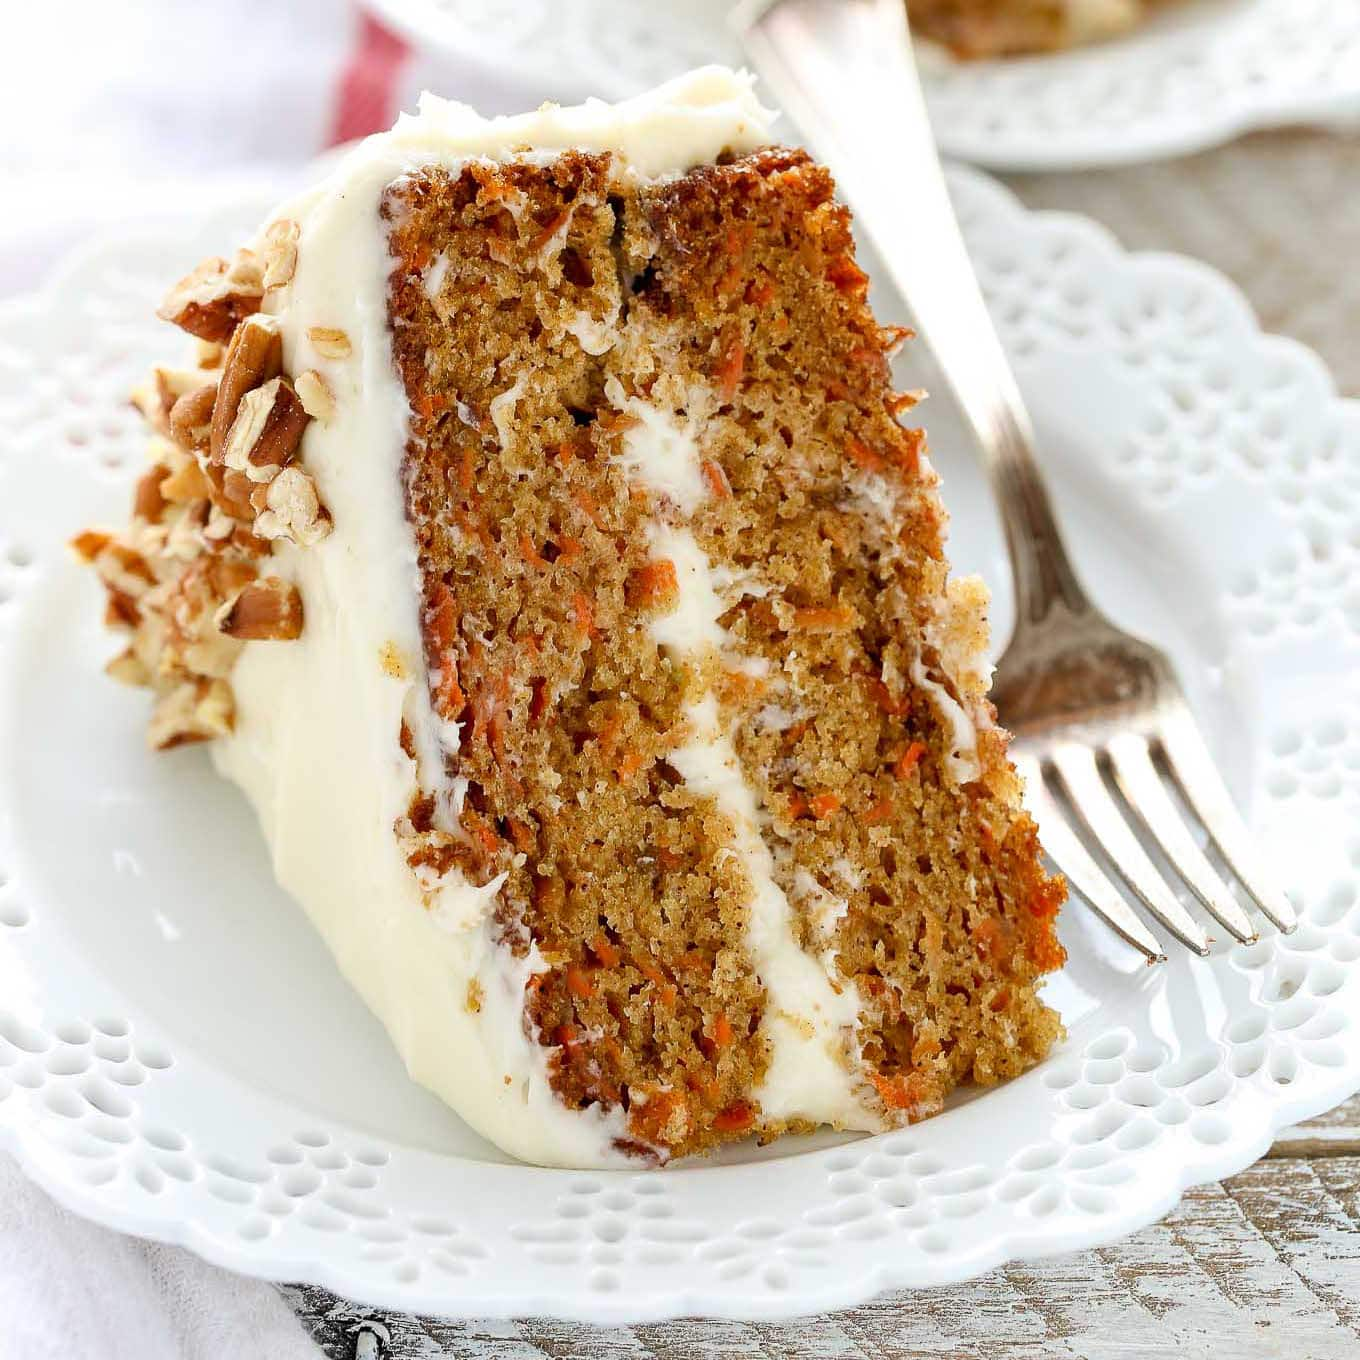 Simple carrot cake cream cheese frosting